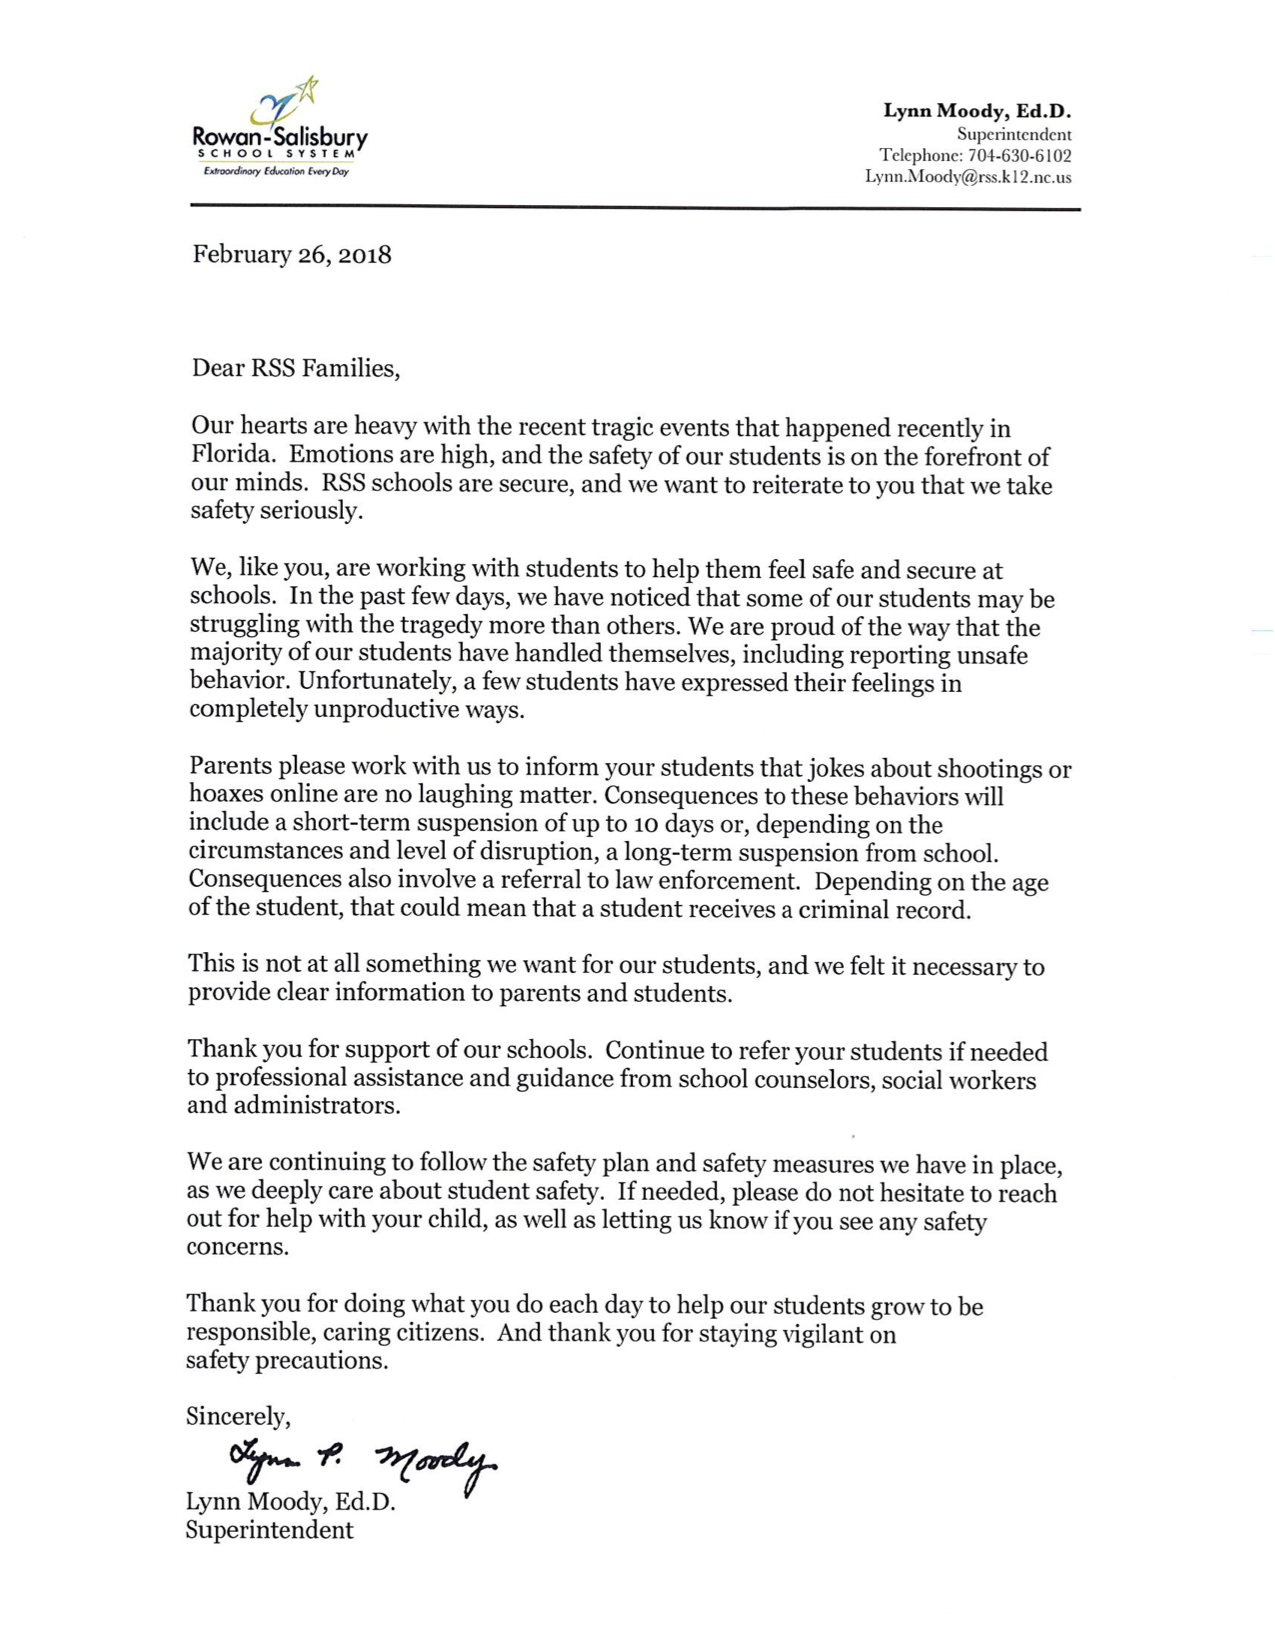 Dr Moody's Letter on School Safety